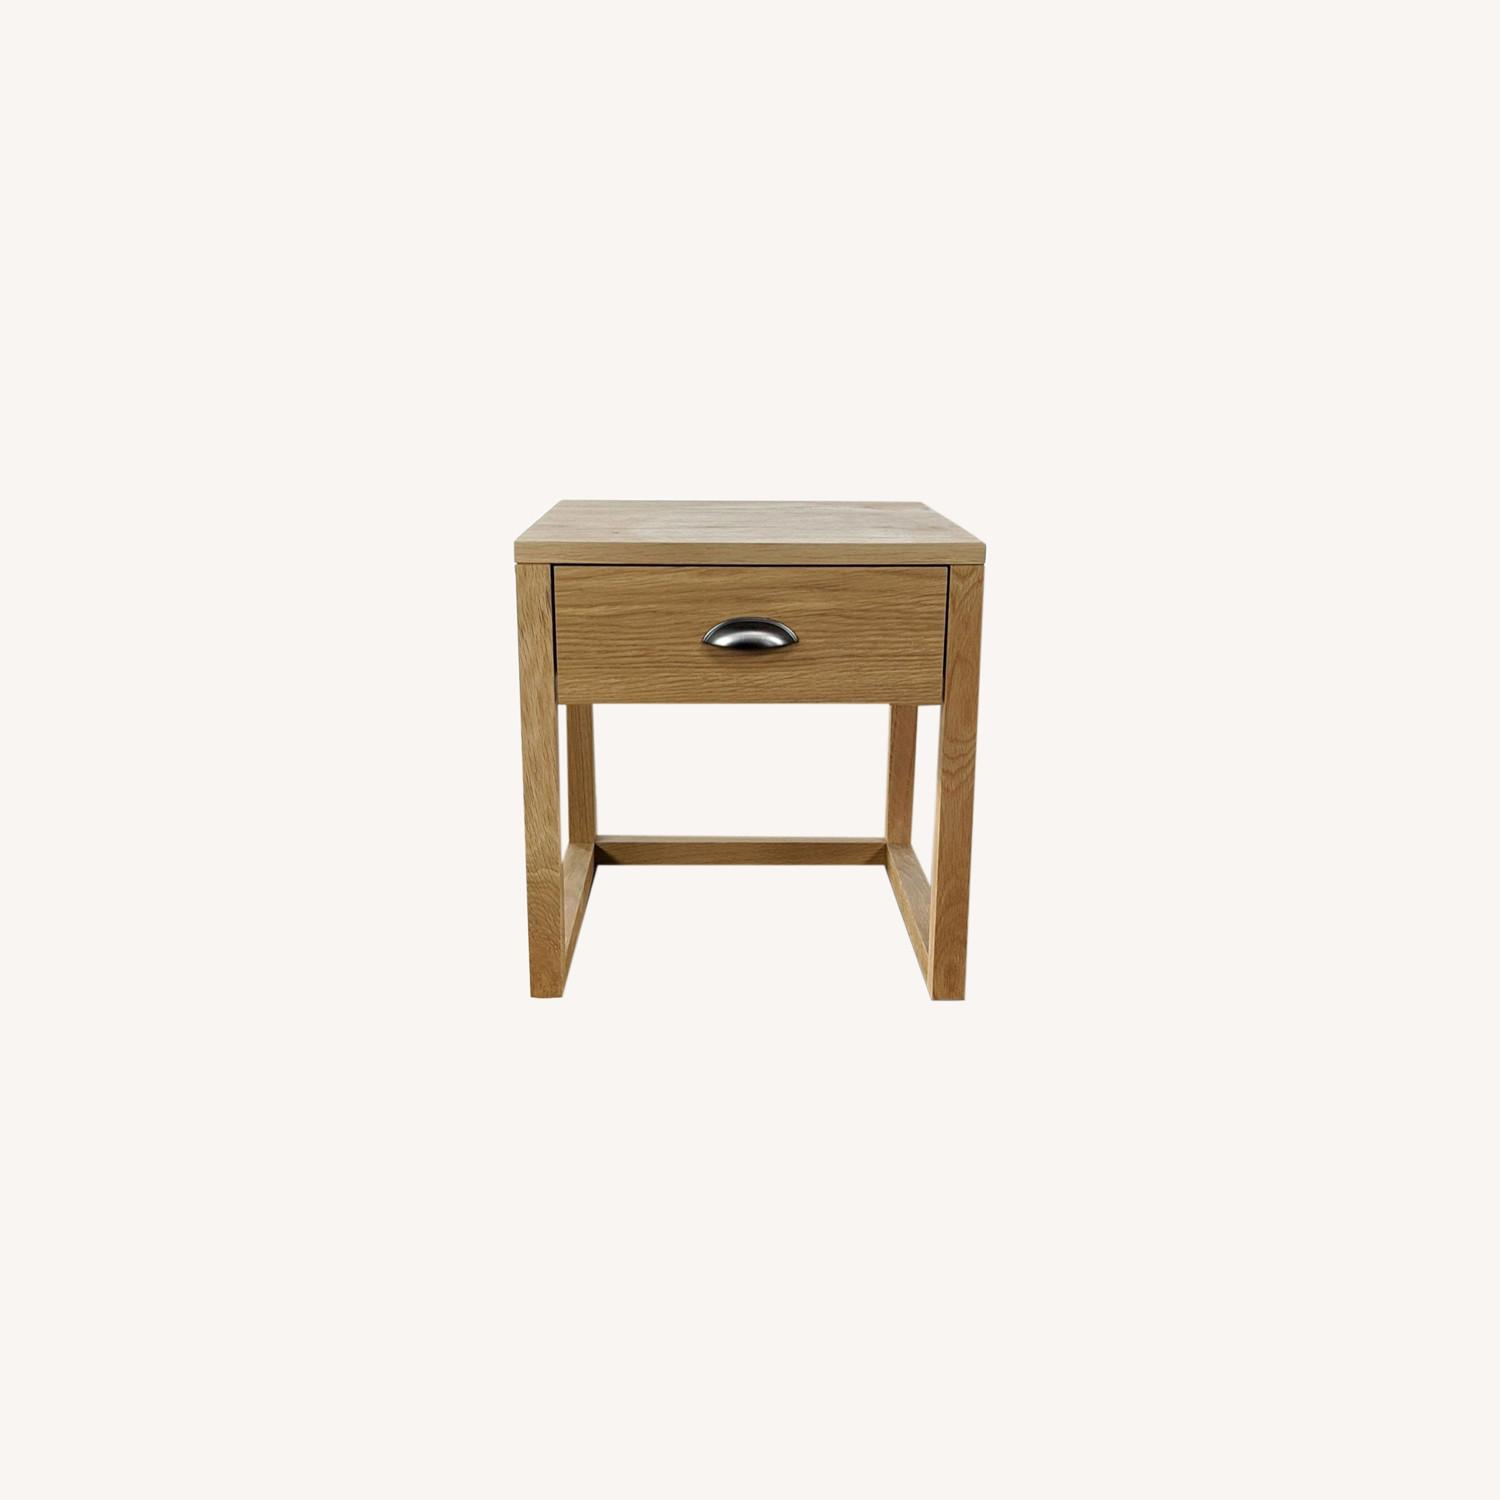 Pair of Yonga Bedside Tables in Natural Oak - image-0